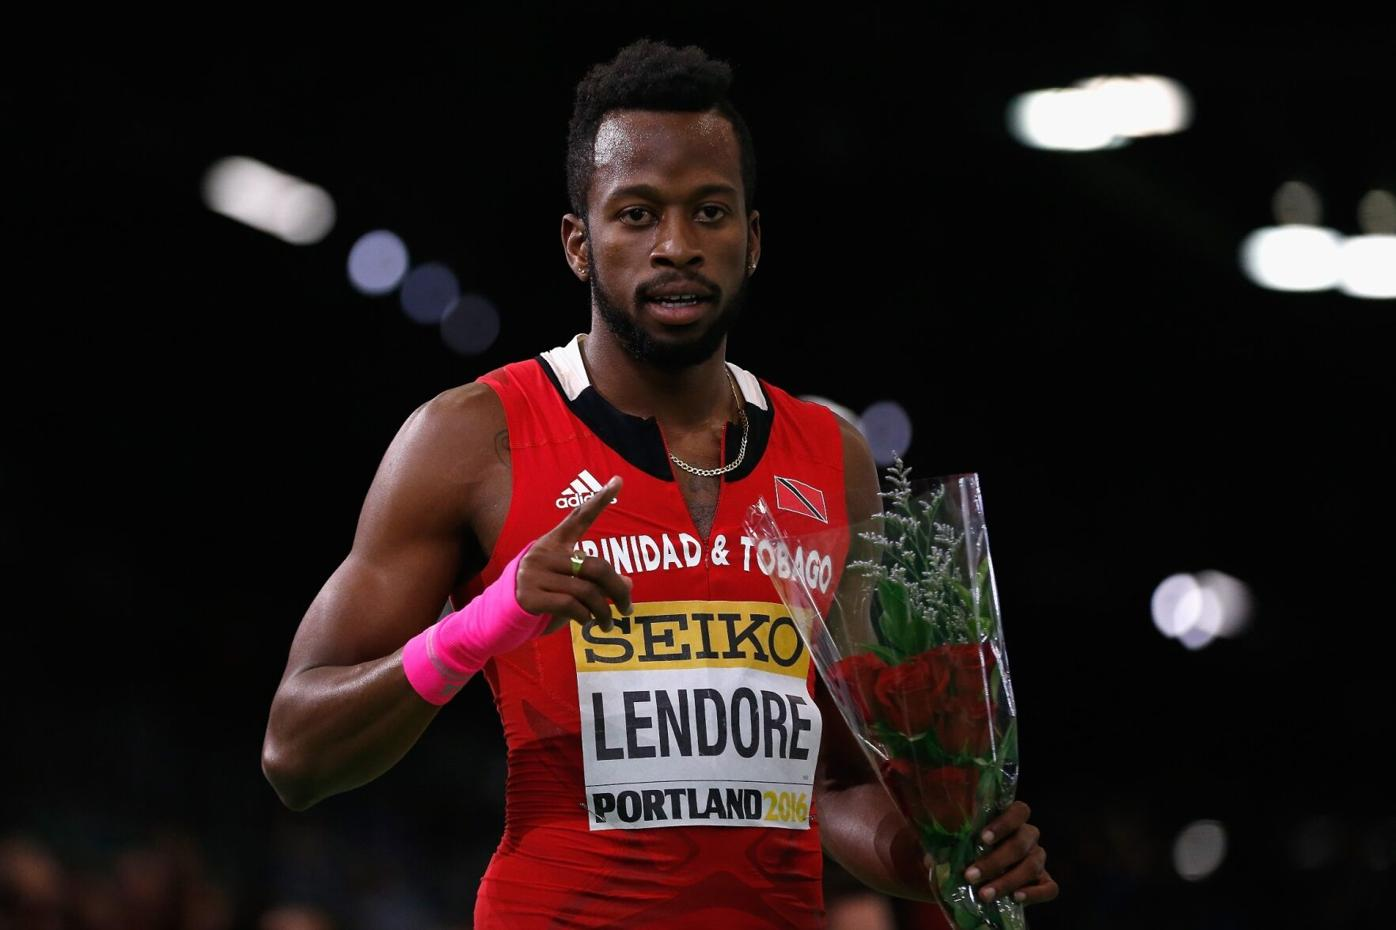 FLASHBACK: Bronze medallist Deon Lendore of Trinidad and Tobago celebrates after the men's 400 metres final, at the 2016 IAAF World Indoor Championships in Portland, Oregon, USA. Photo: GETTY IMAGES FOR IAAF